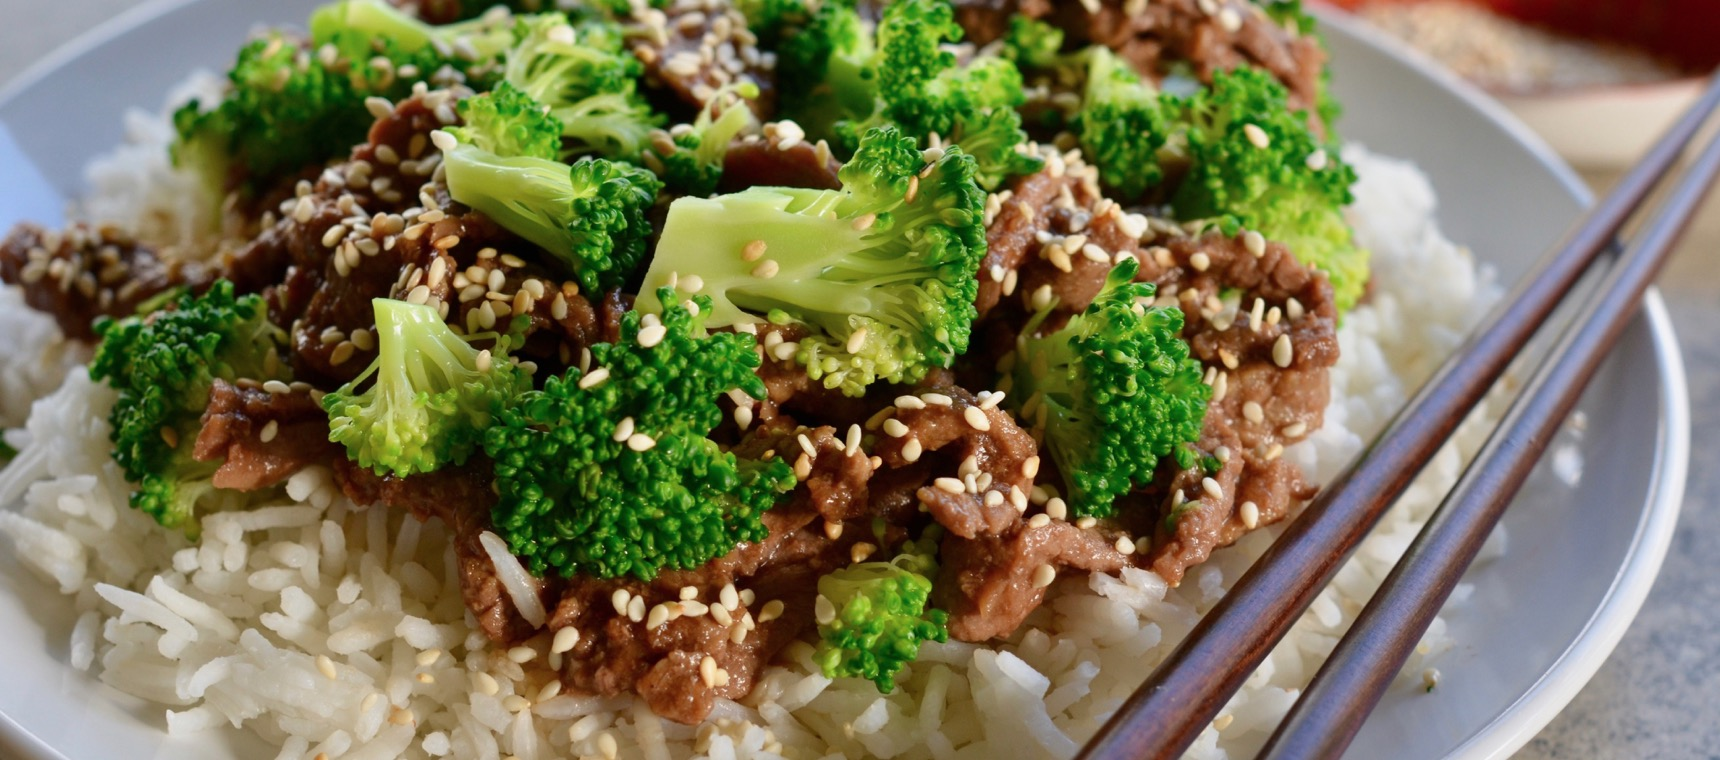 Slow Cooked Beef and Broccoli